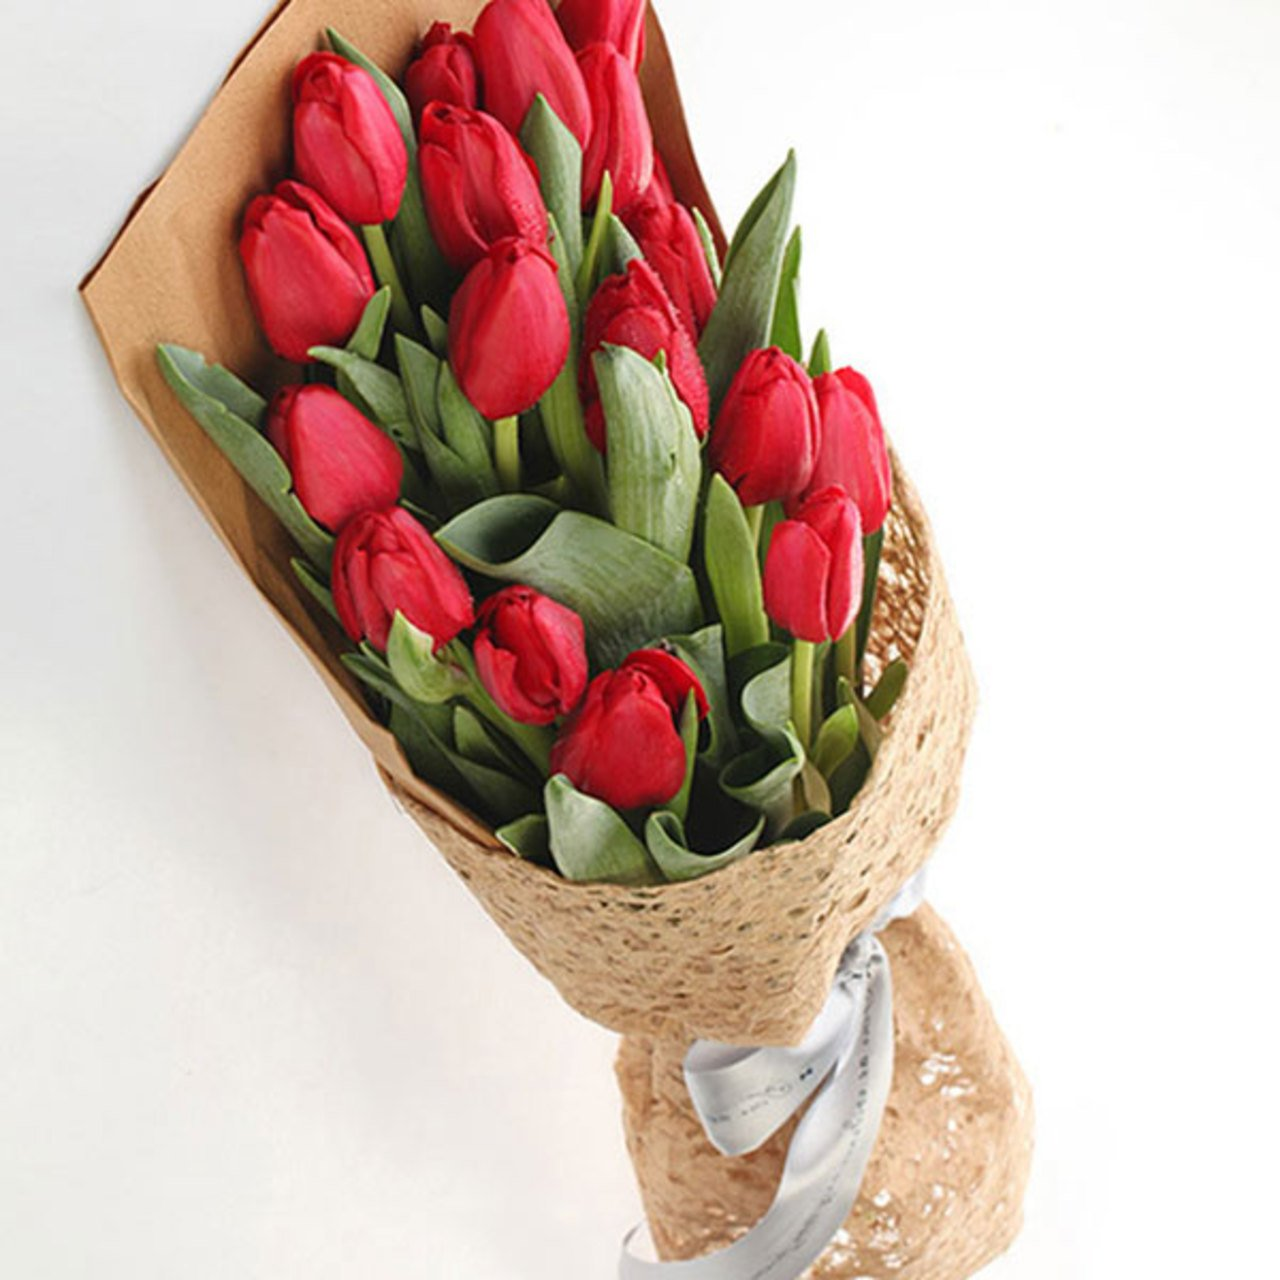 Love by my side( A selection of 19 superb red tulips. (Tulips are seasonal flowers-